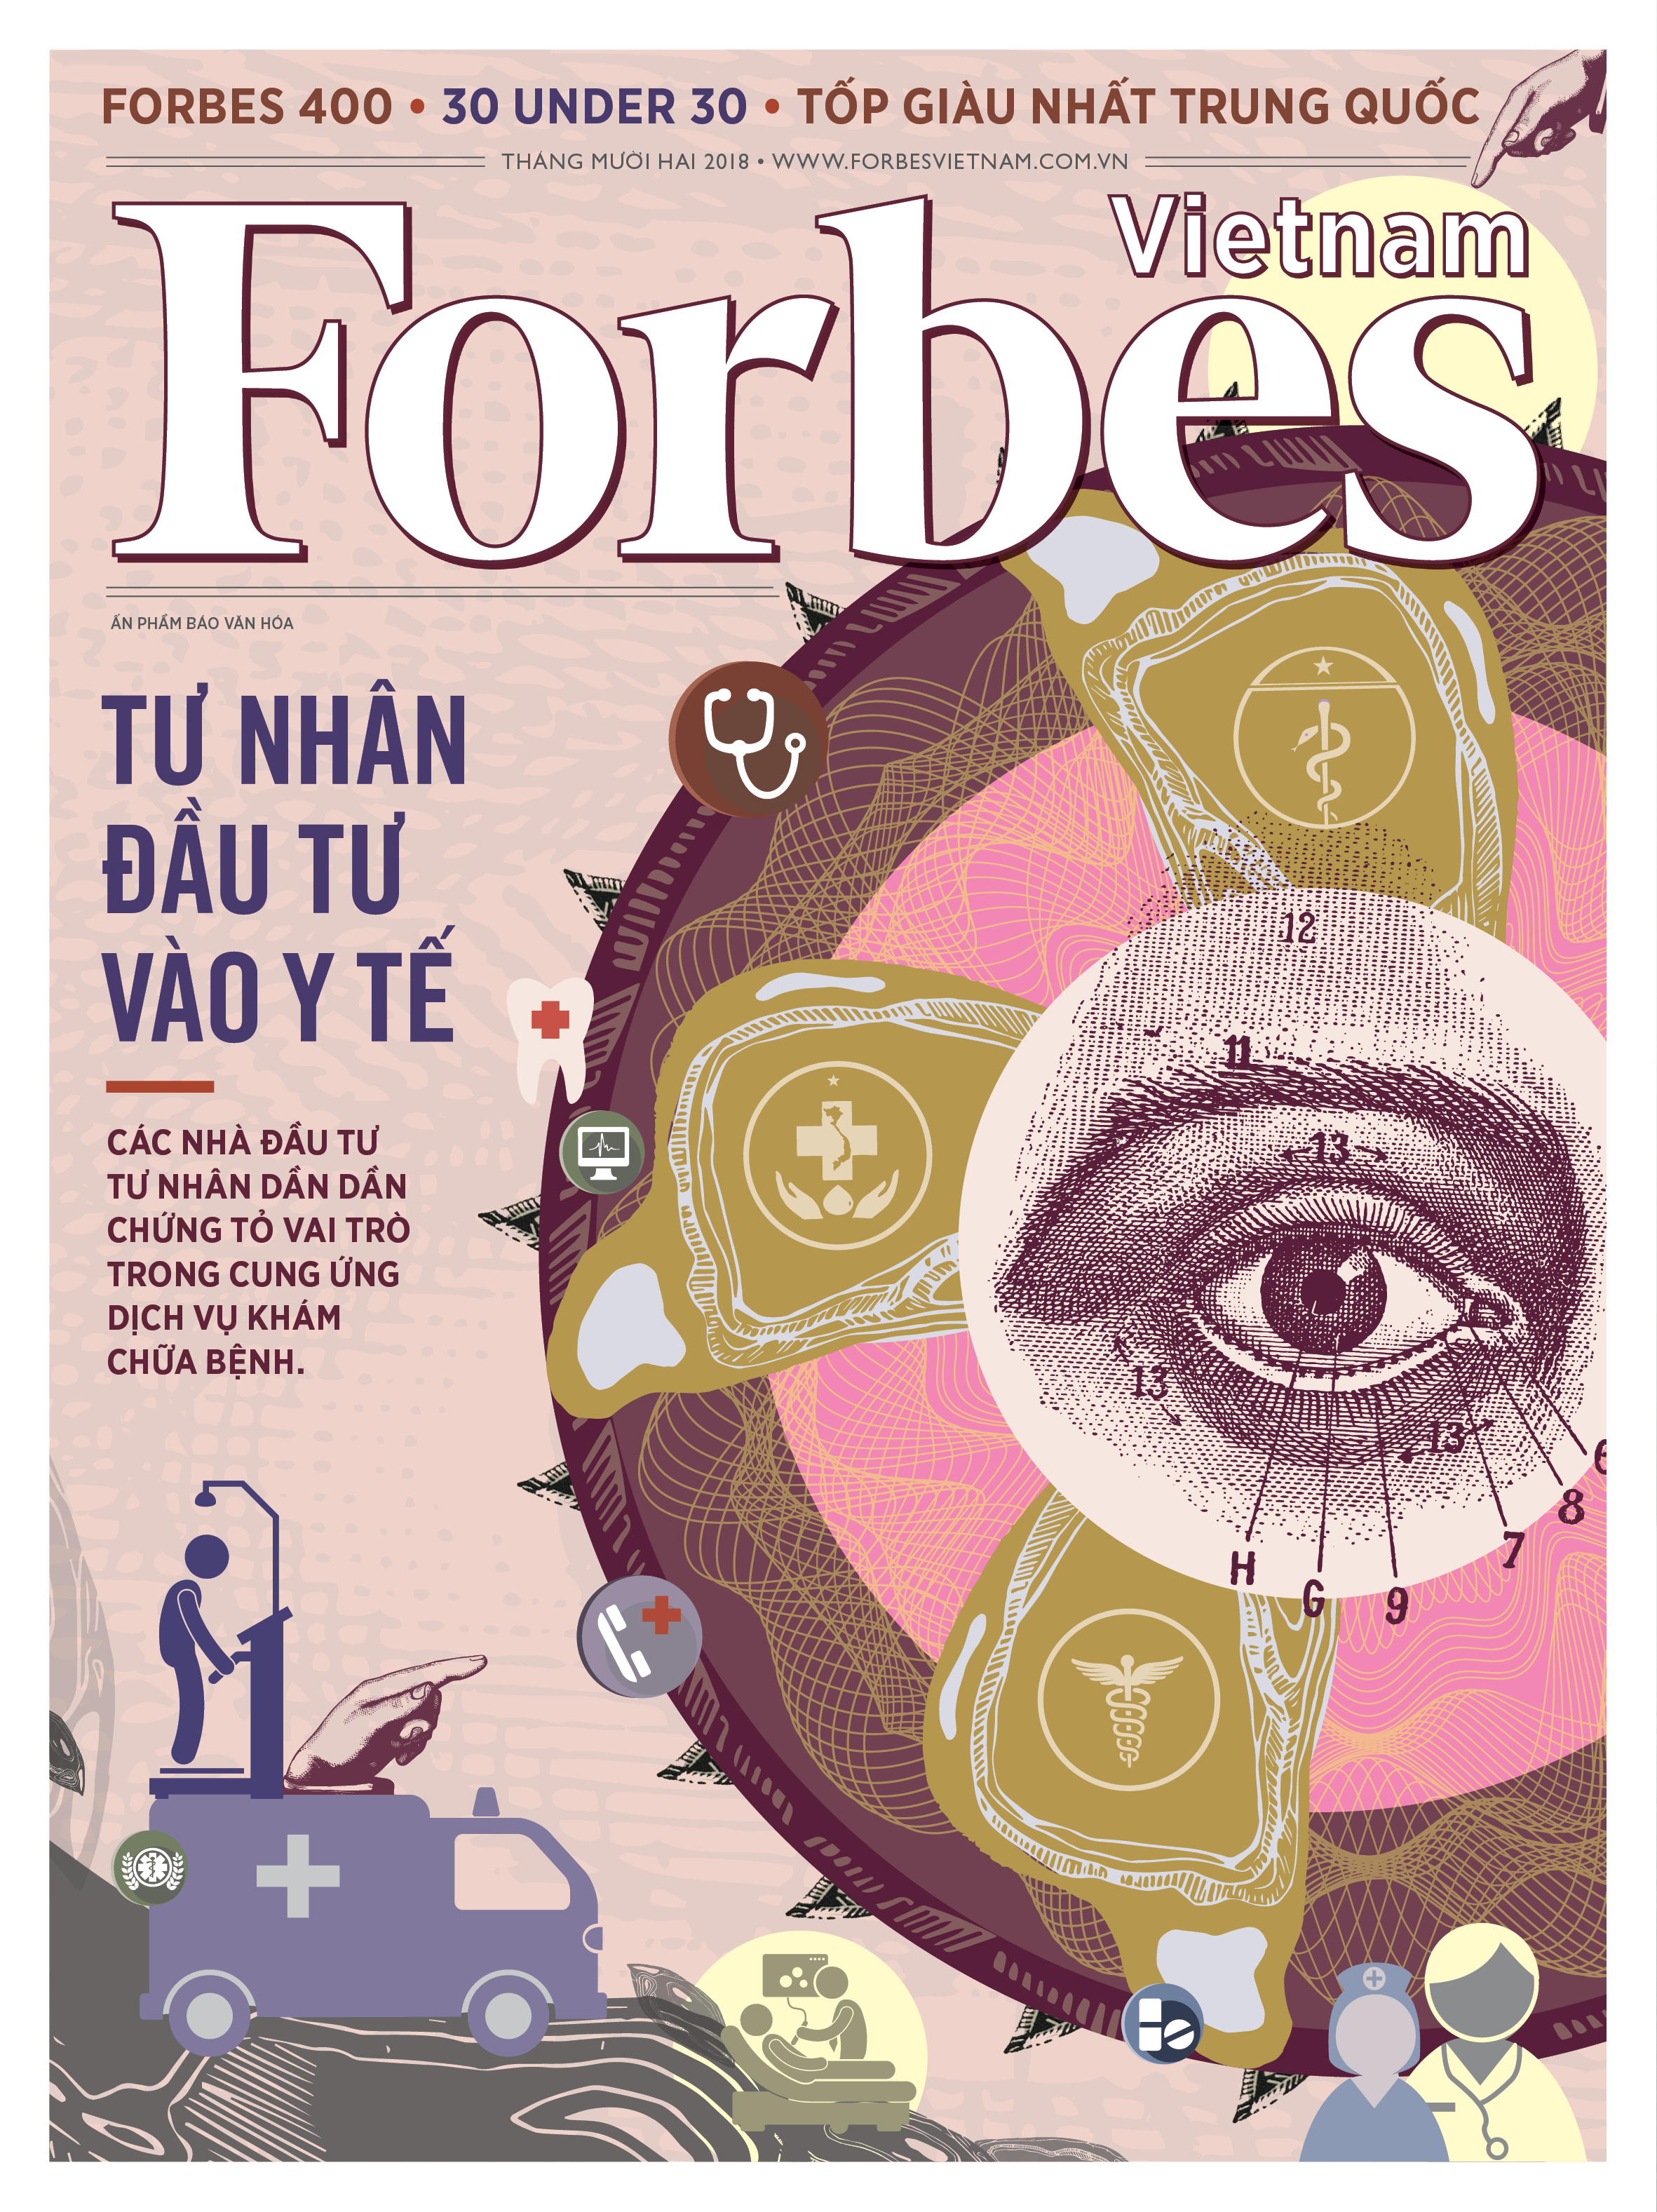 Forbes Vietnam Cover December 2018 Issue